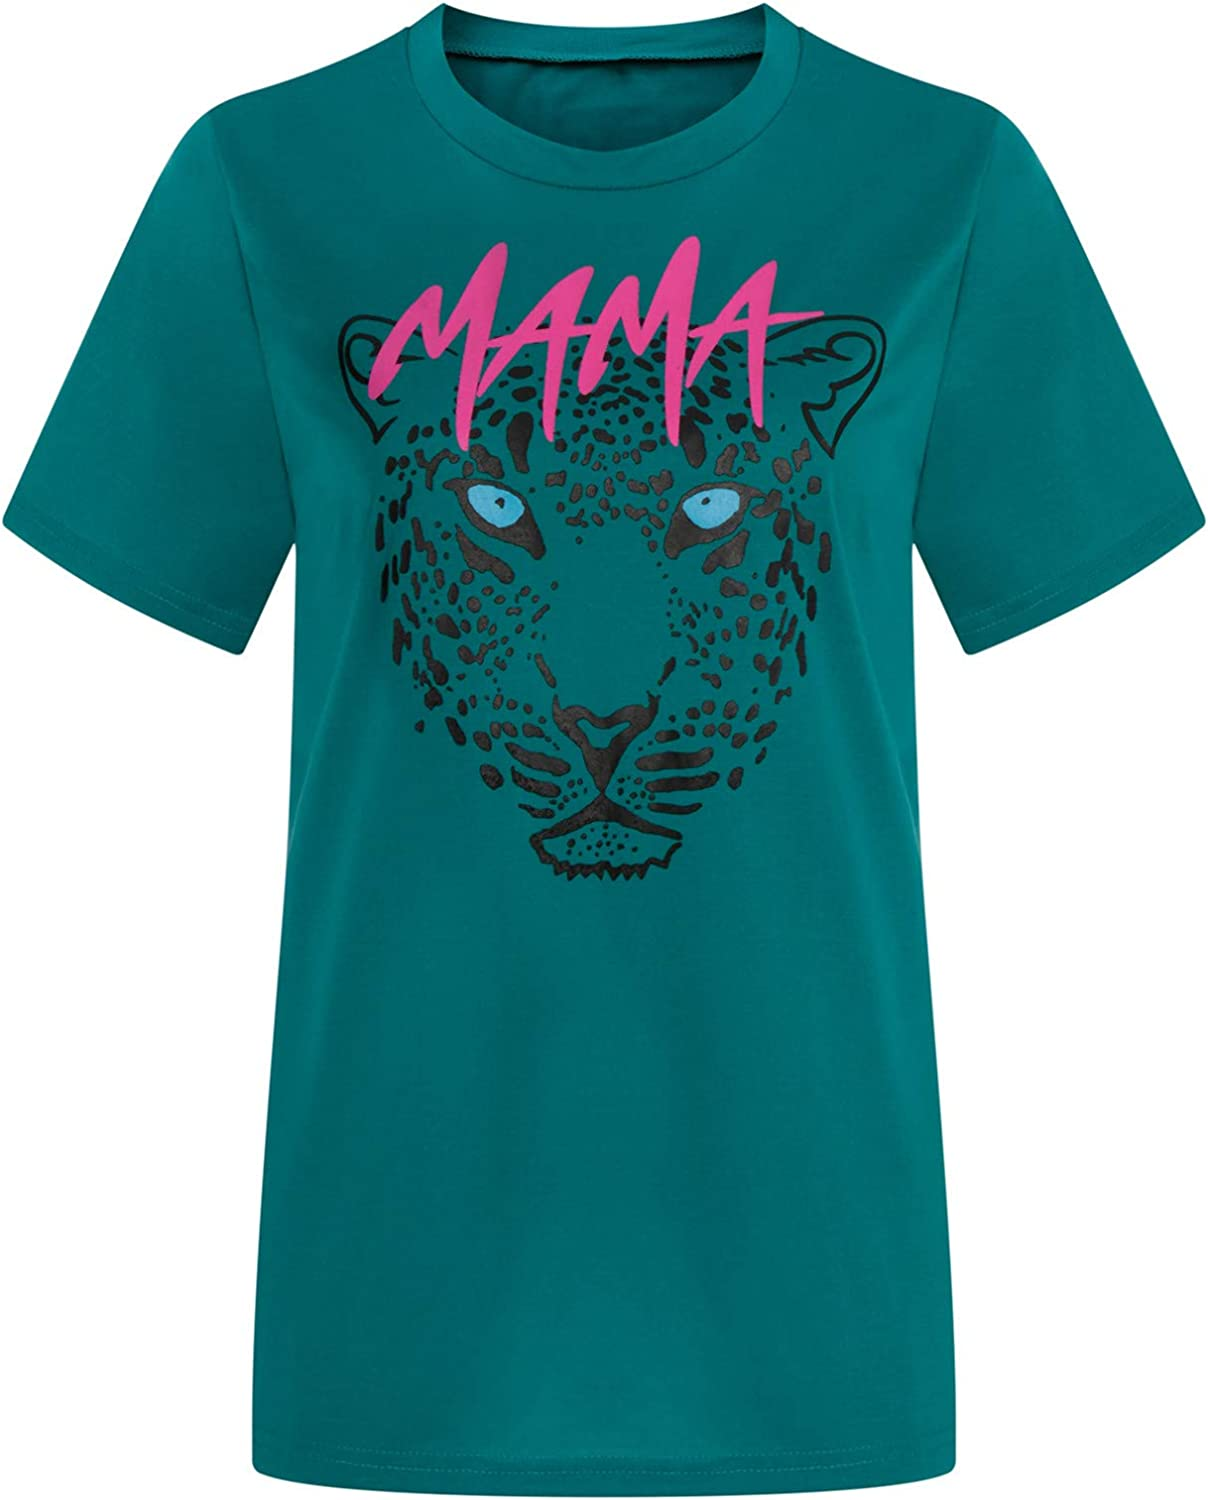 Aukbays T-Shirts for Women Mama Graphic Letter Print Short Sleeve Tops Summer Loose Fit Caual O Neck Shirt Blouses Tees